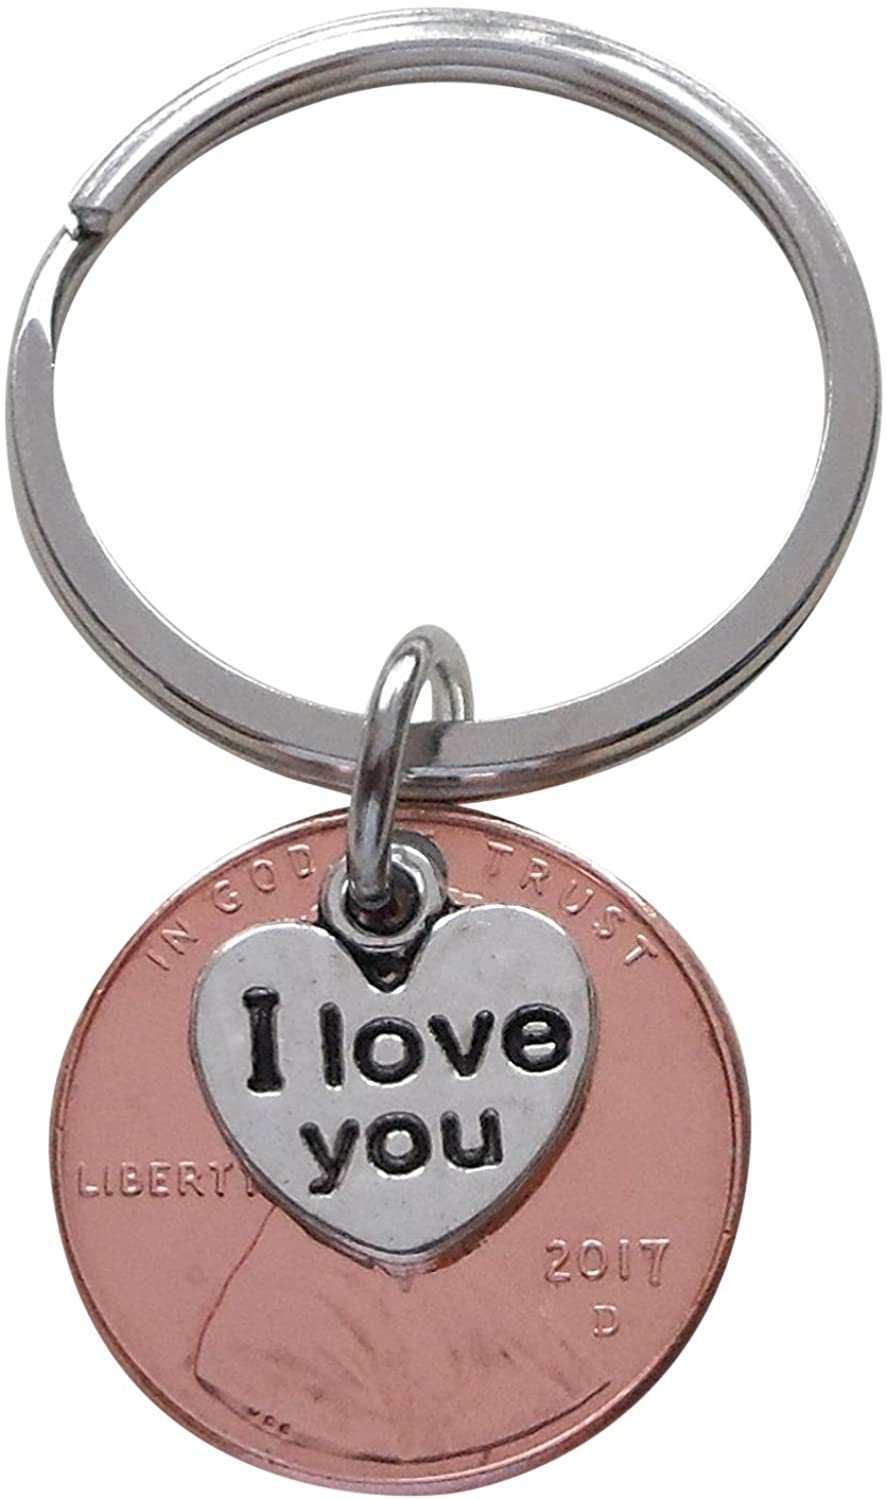 "2017 Penny Keychain • 1-year Anniversary Gift w/ ""I Love You"" Heart Charm from JE"